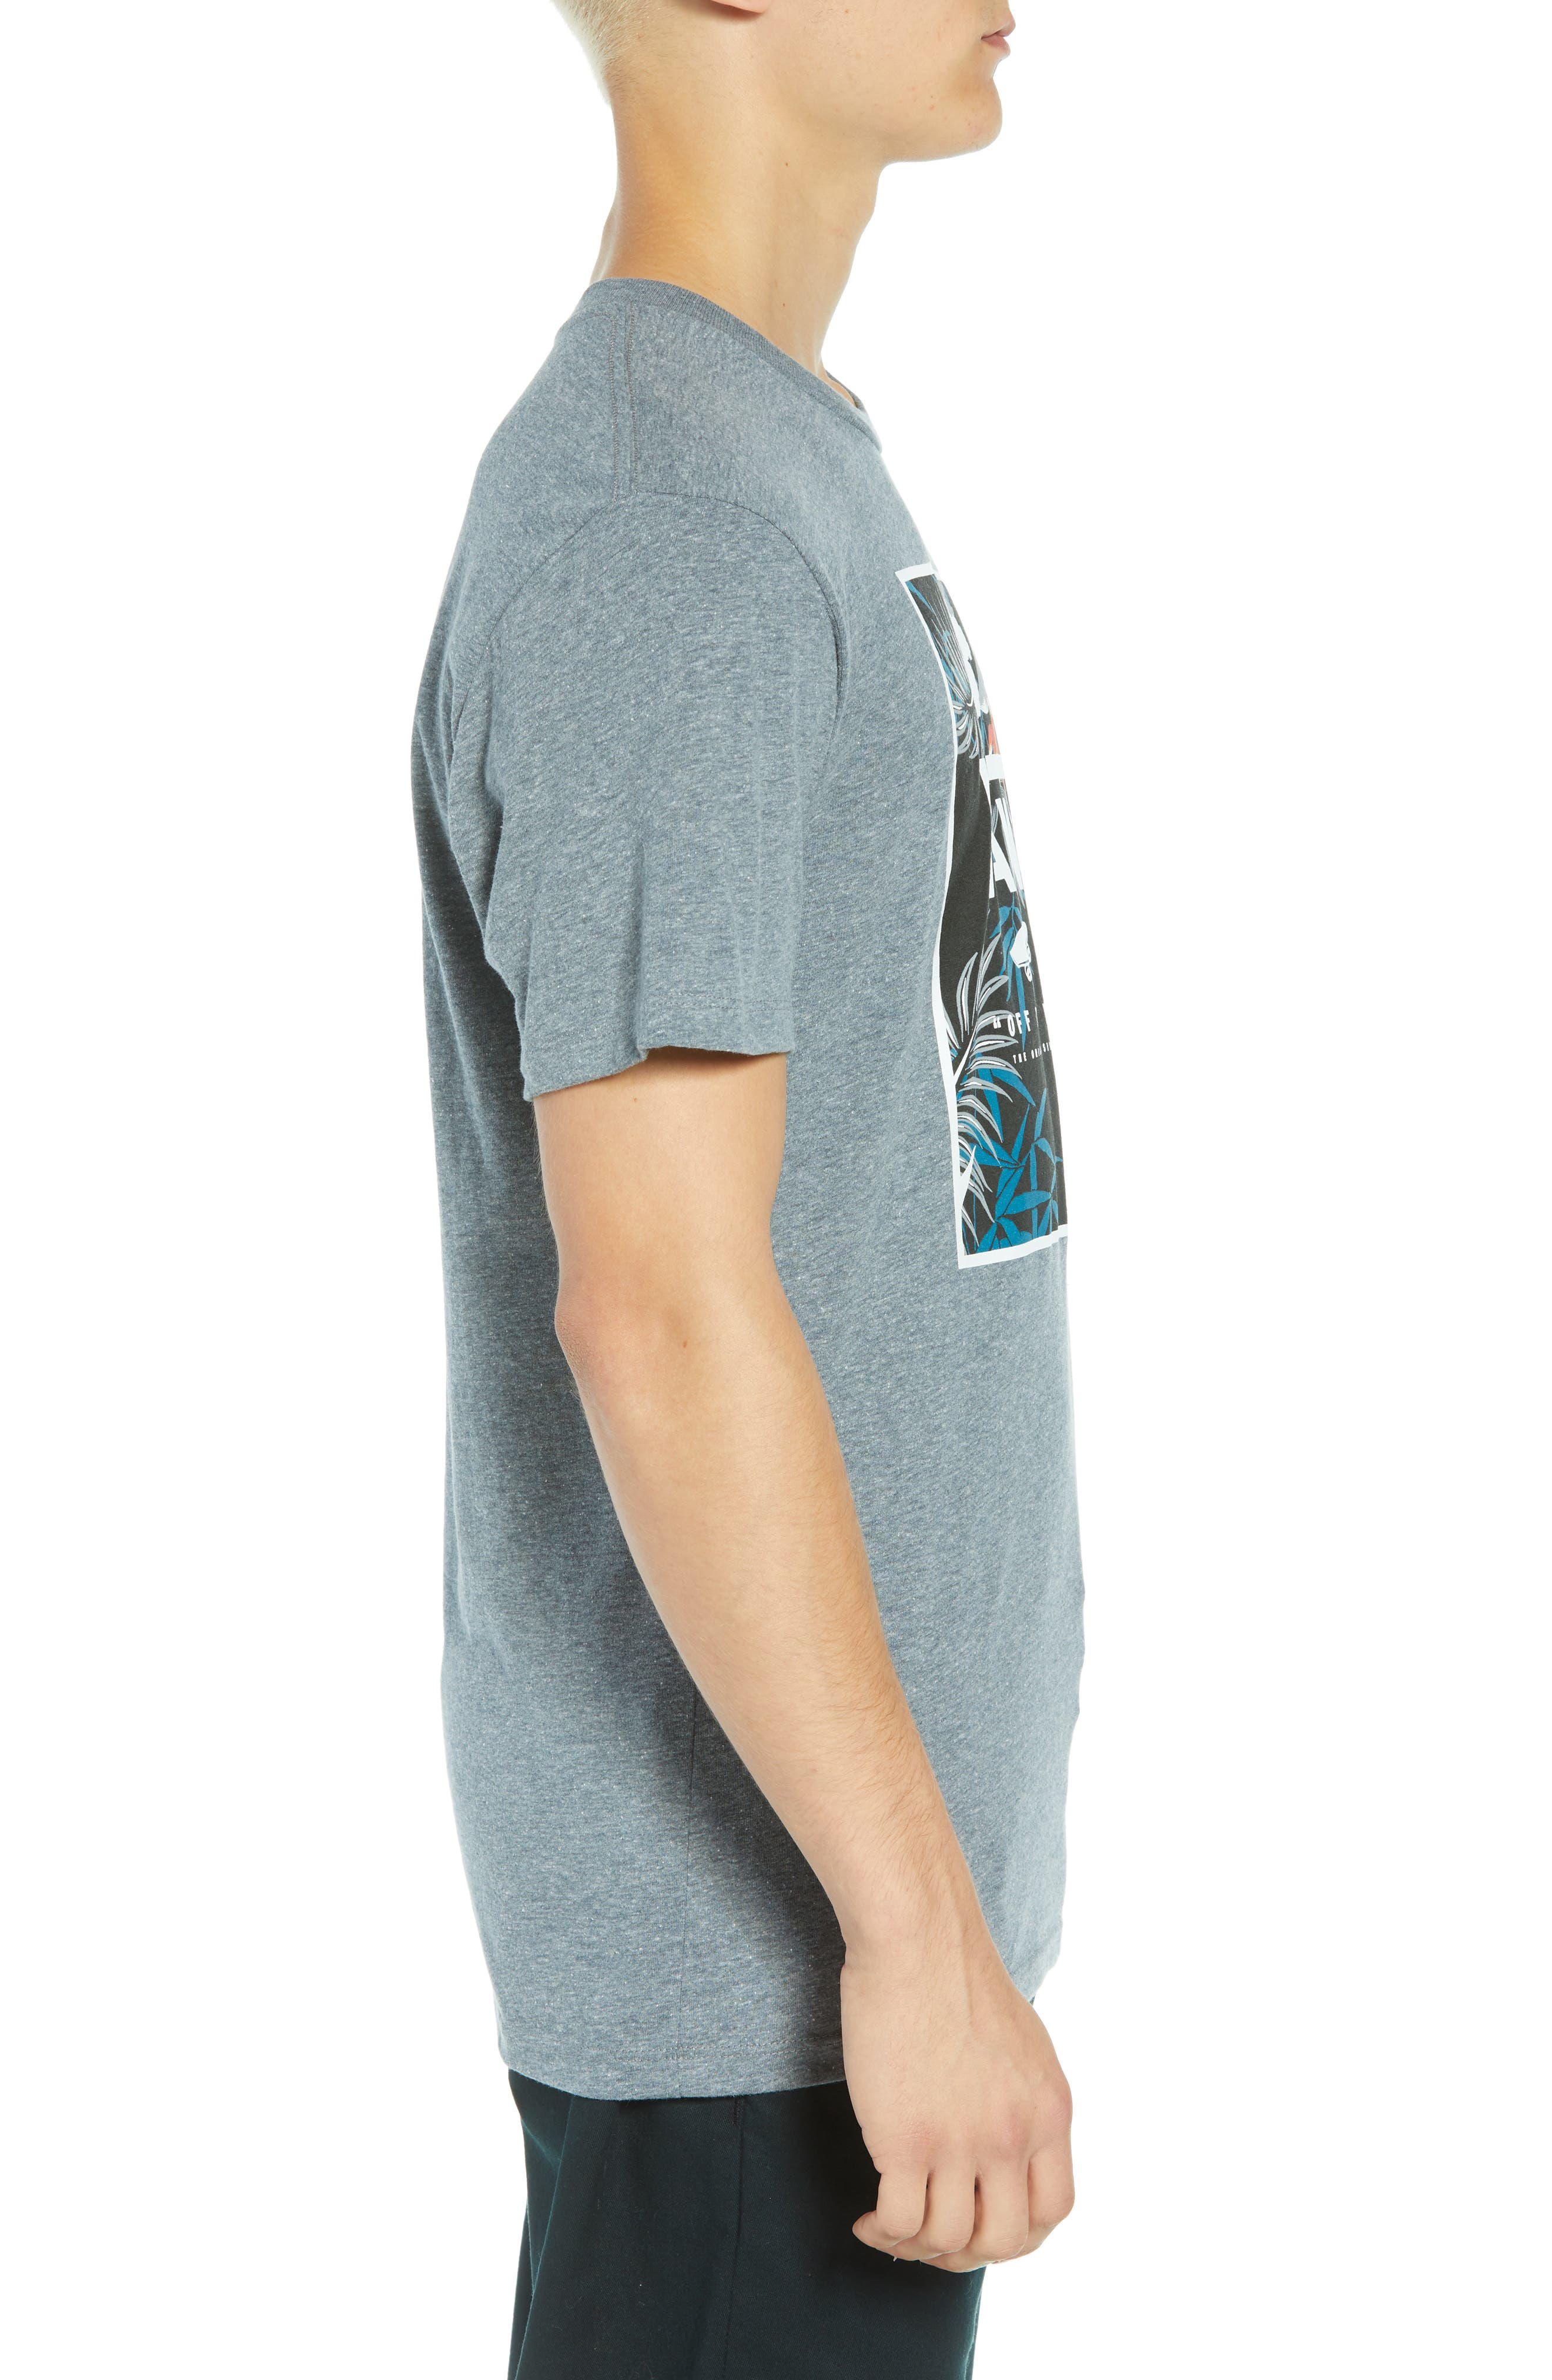 Print Box Graphic T-Shirt,                             Alternate thumbnail 3, color,                             HEATHER GREY/ PEACE OUT FLORAL